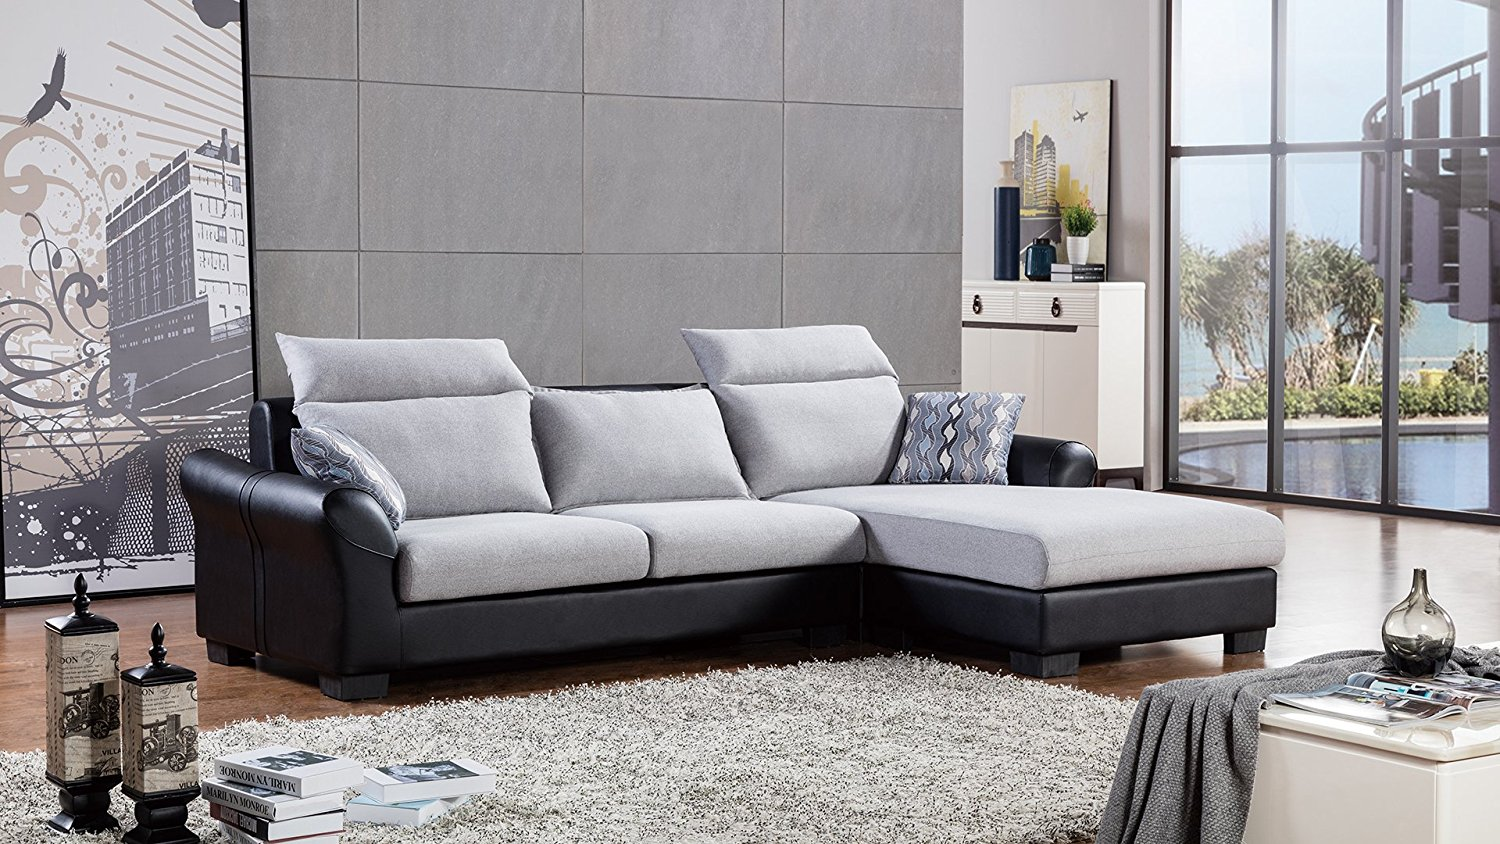 Cheap American Eagle Sofa Find American Eagle Sofa Deals On Line At